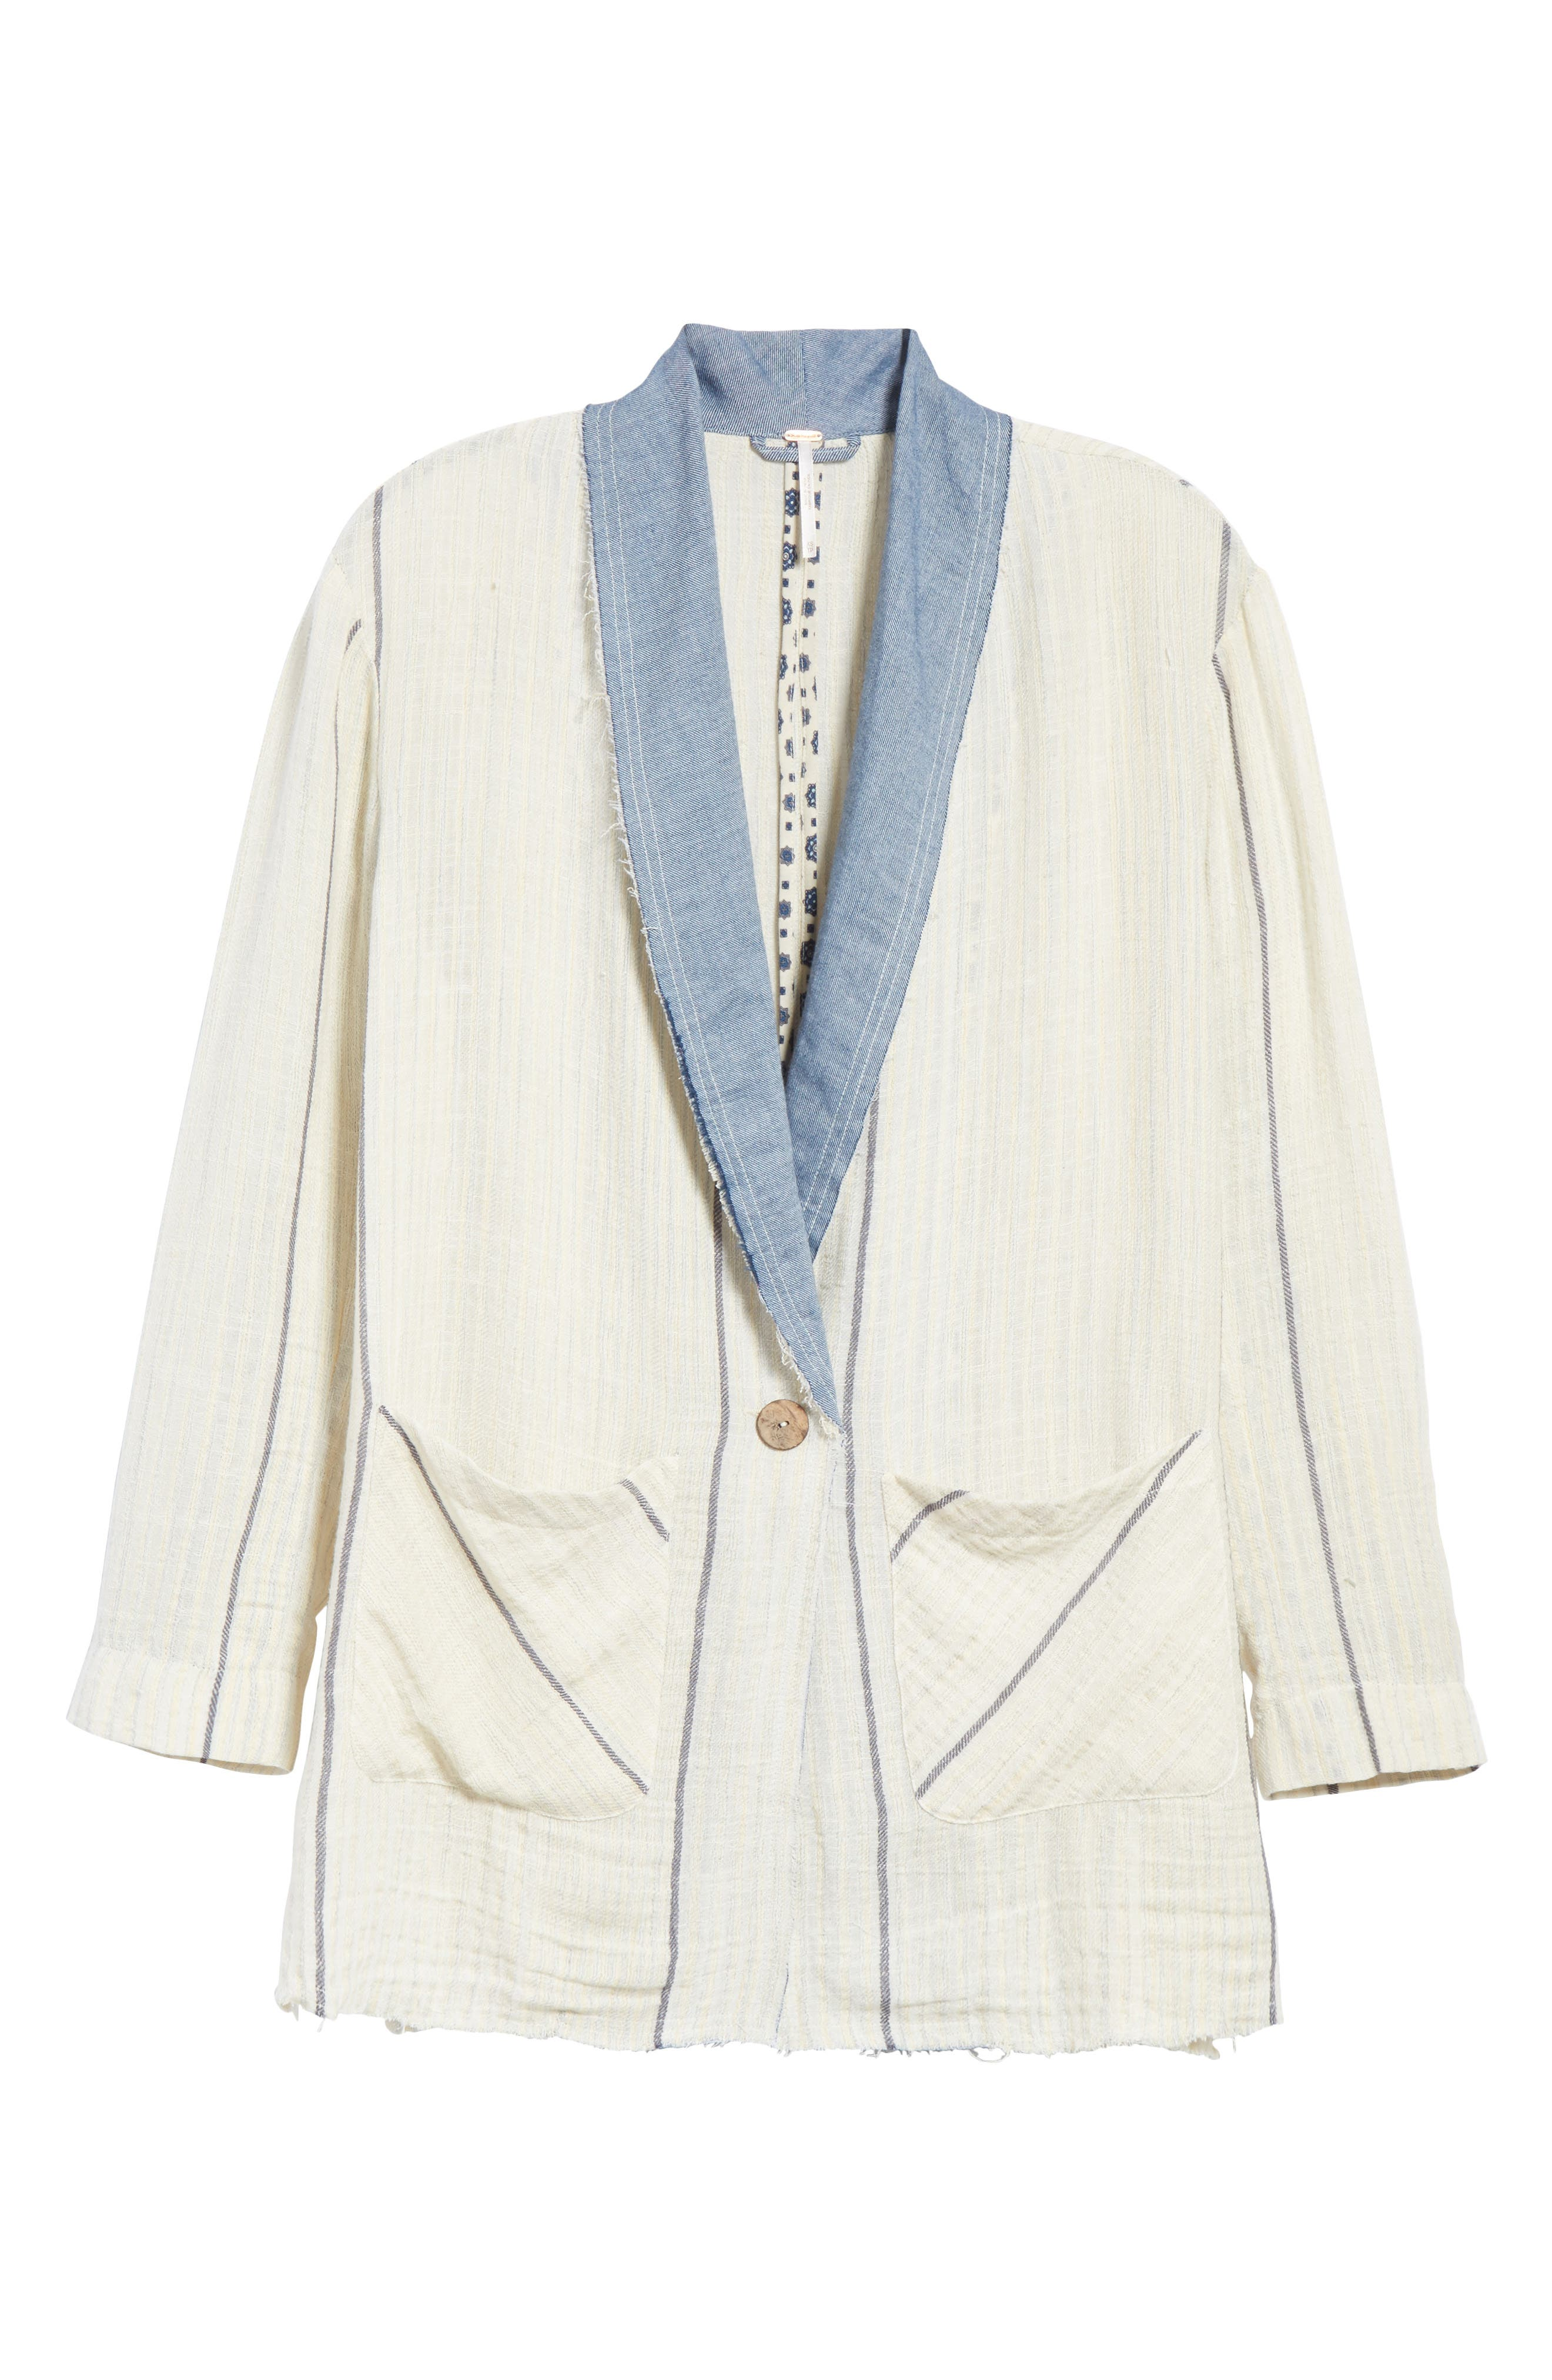 Aria Denim Collar Blazer,                             Alternate thumbnail 5, color,                             900